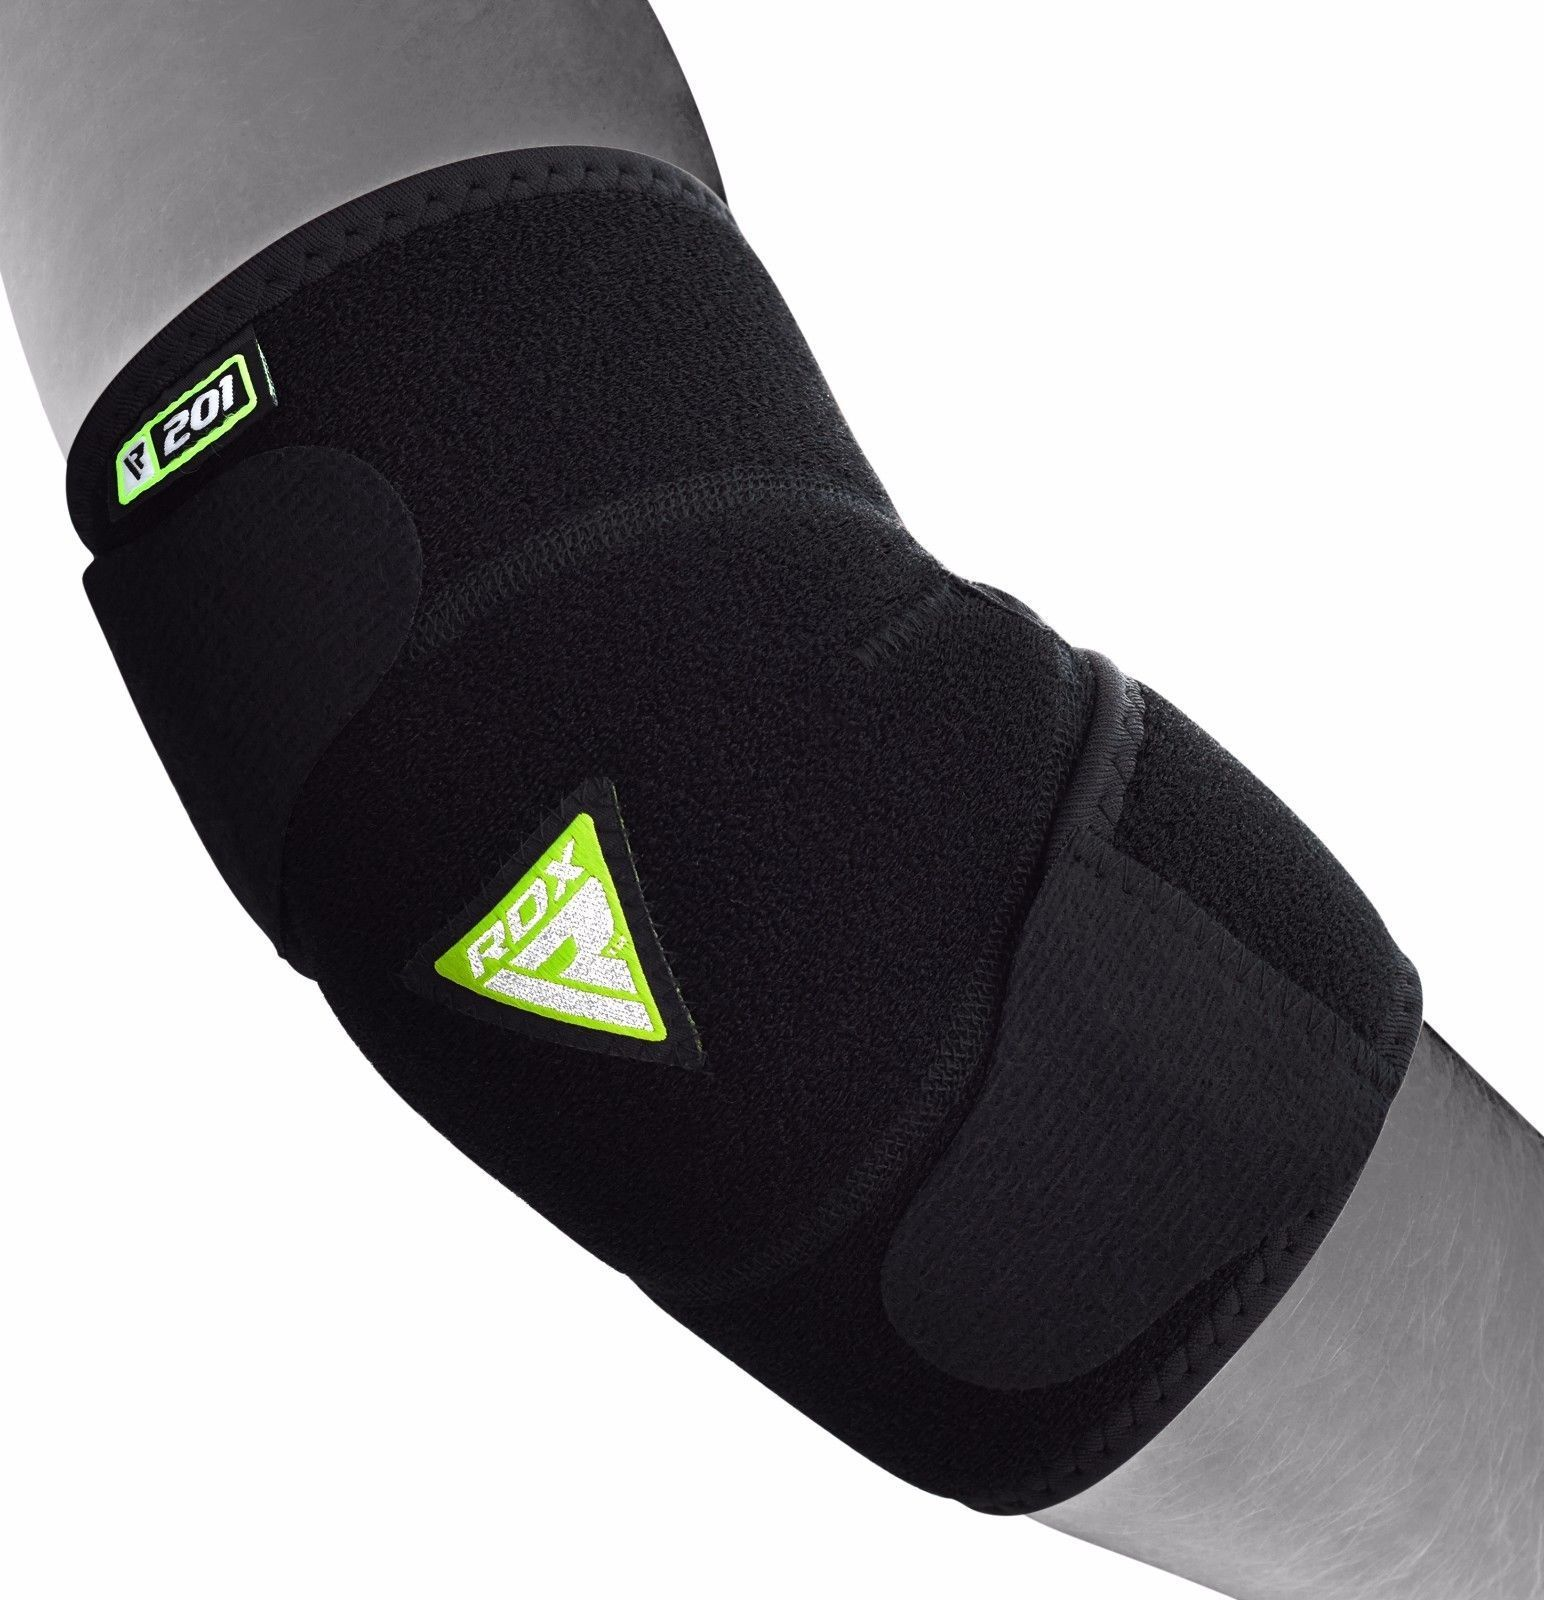 RDX Knee Protector Brace Support Sleeves Guard Training Sports Fitness Gym